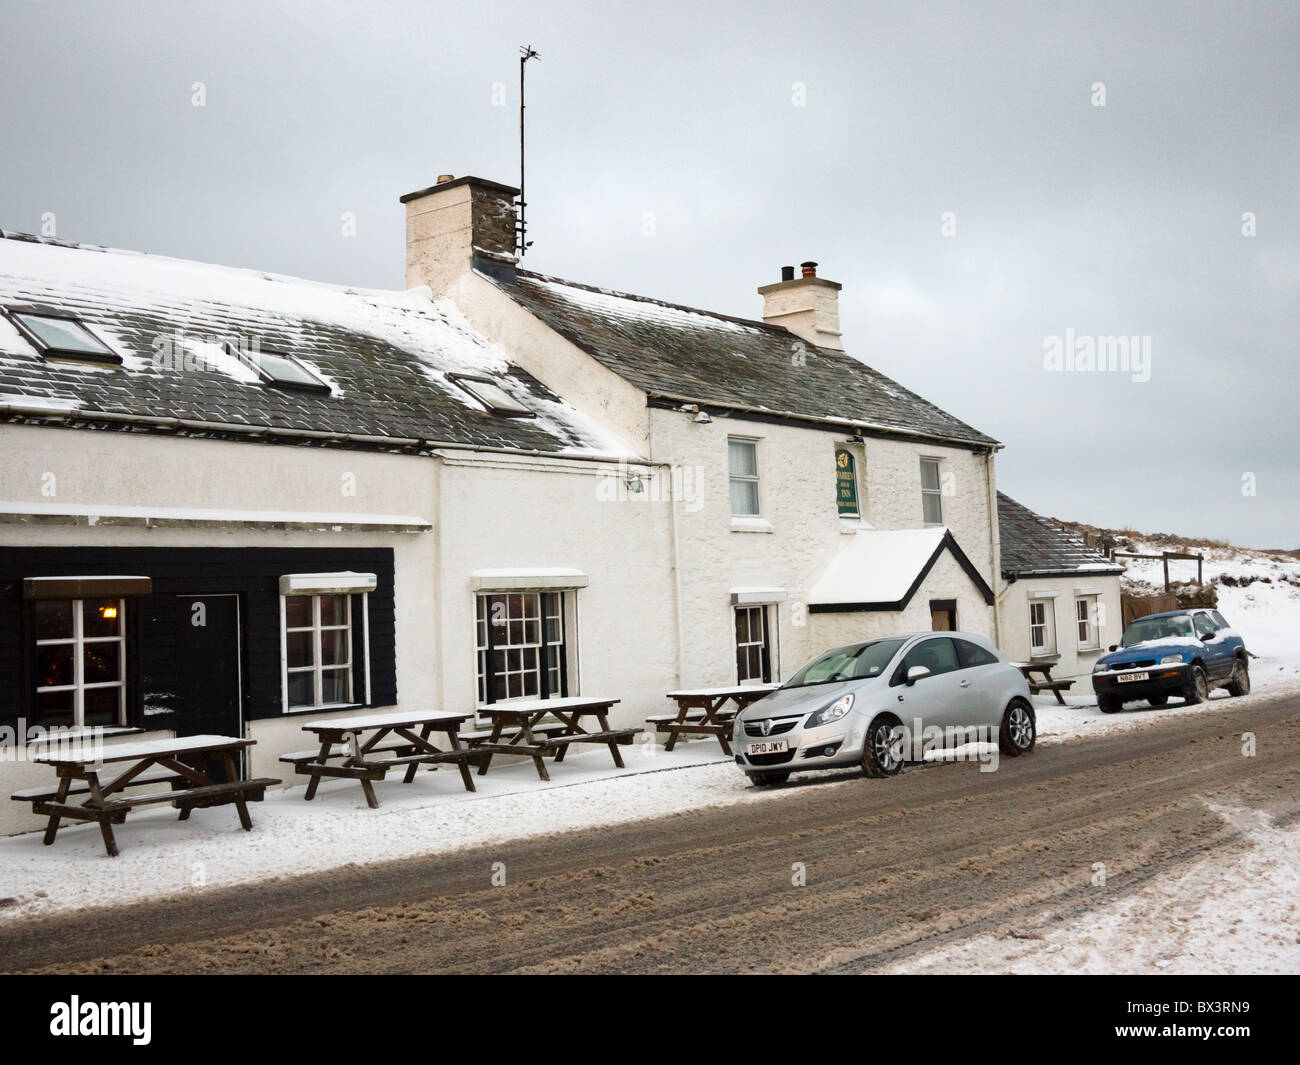 Warren House Inn in Dartmoor National Park in winter near Postbridge, Devon, England, United Kingdom. - Stock Image